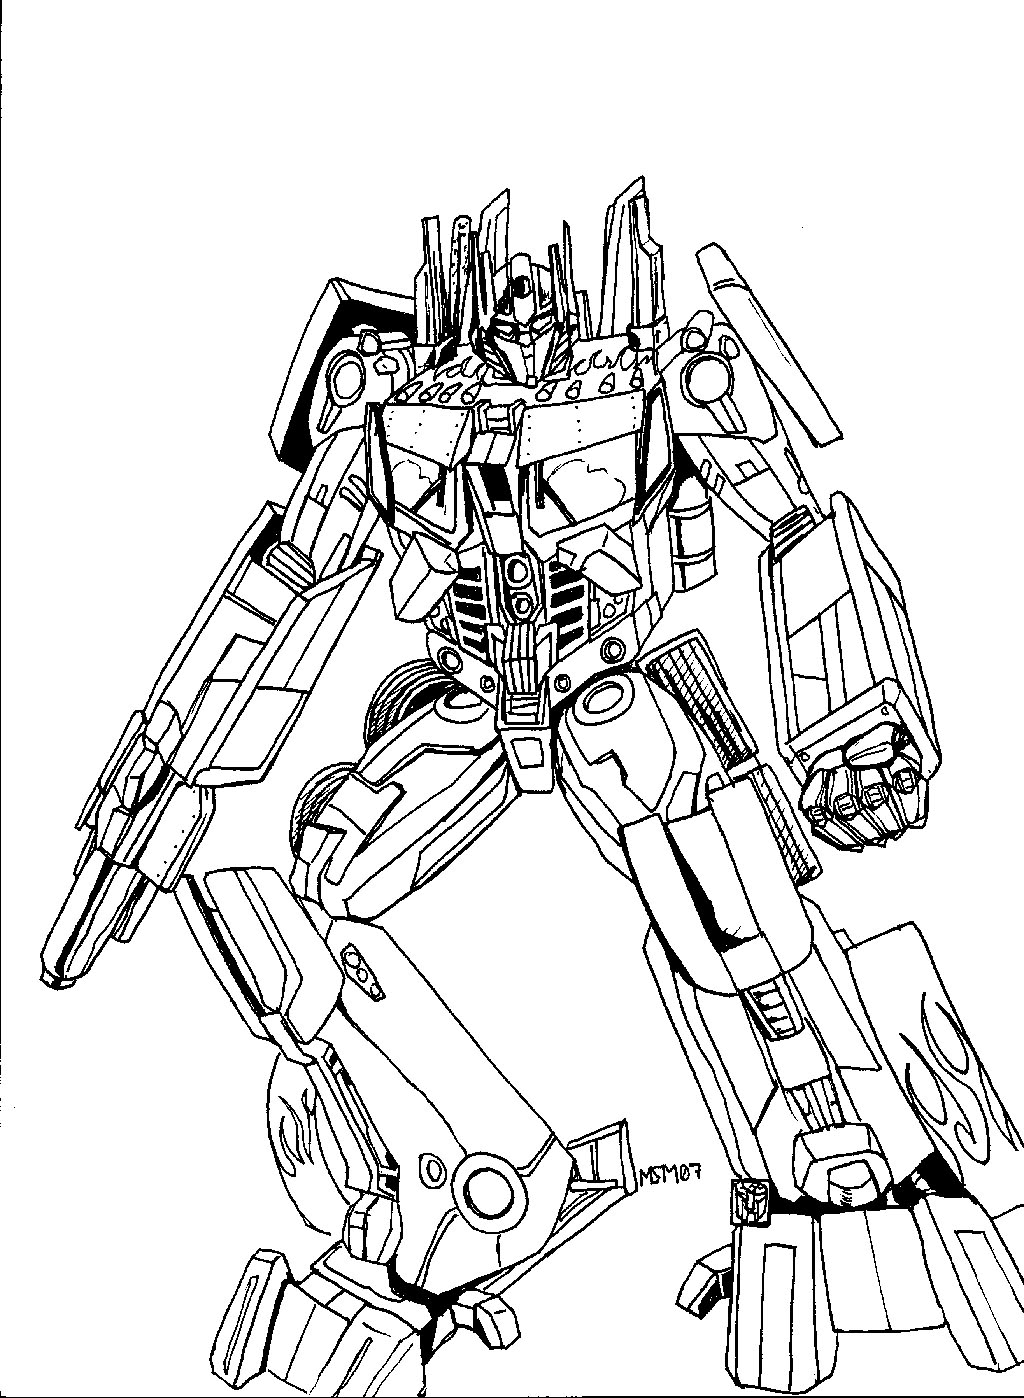 Transformers Animated Free Coloring Pages | Murderthestout